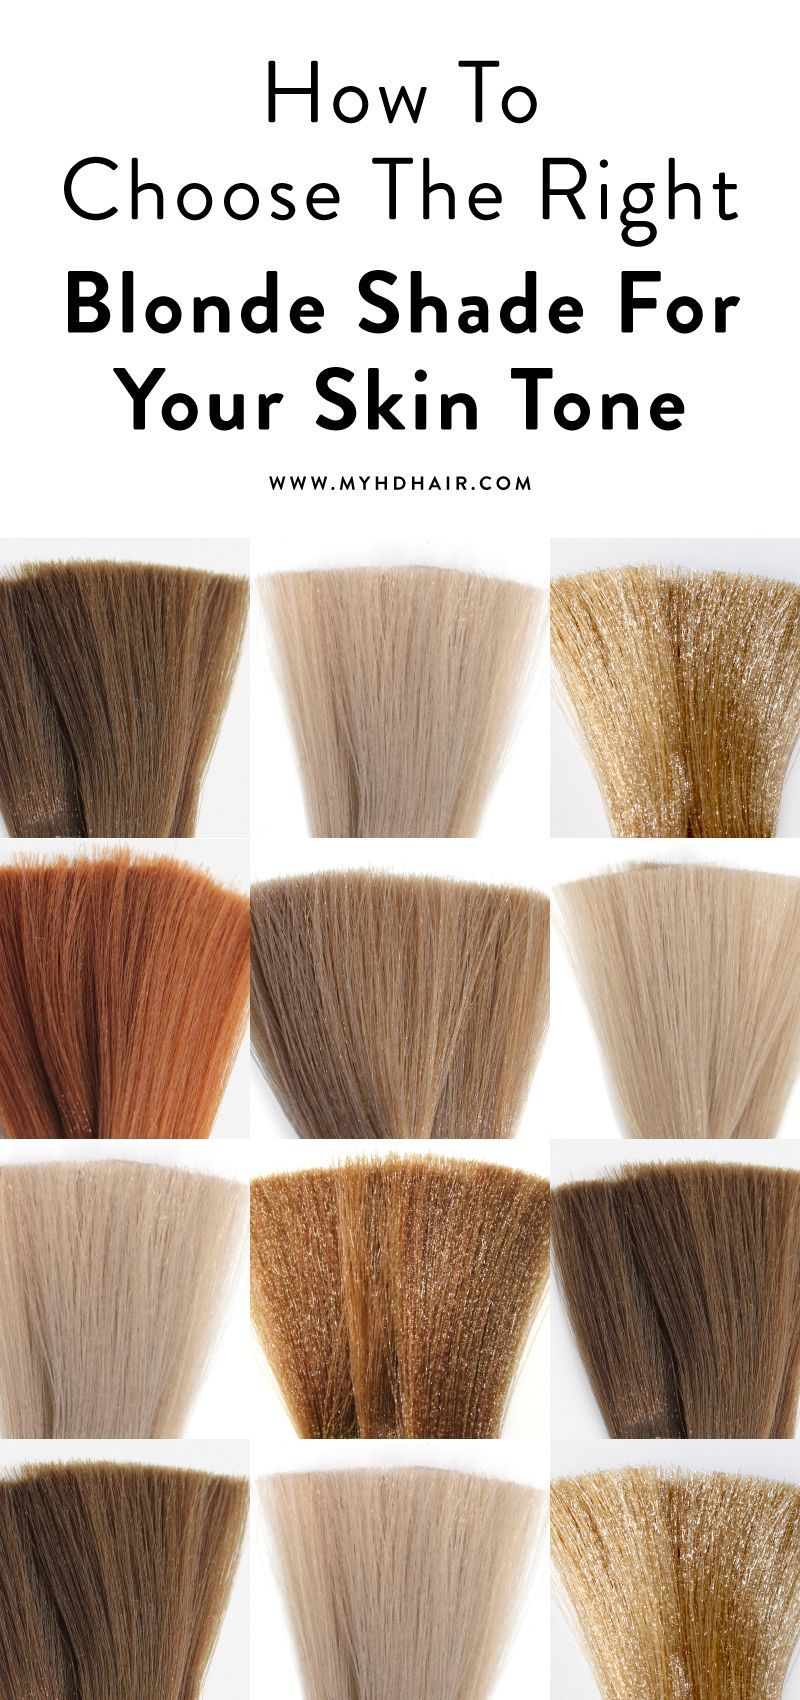 How To Choose The Right Blonde Shade For Your Skin Tone Skin